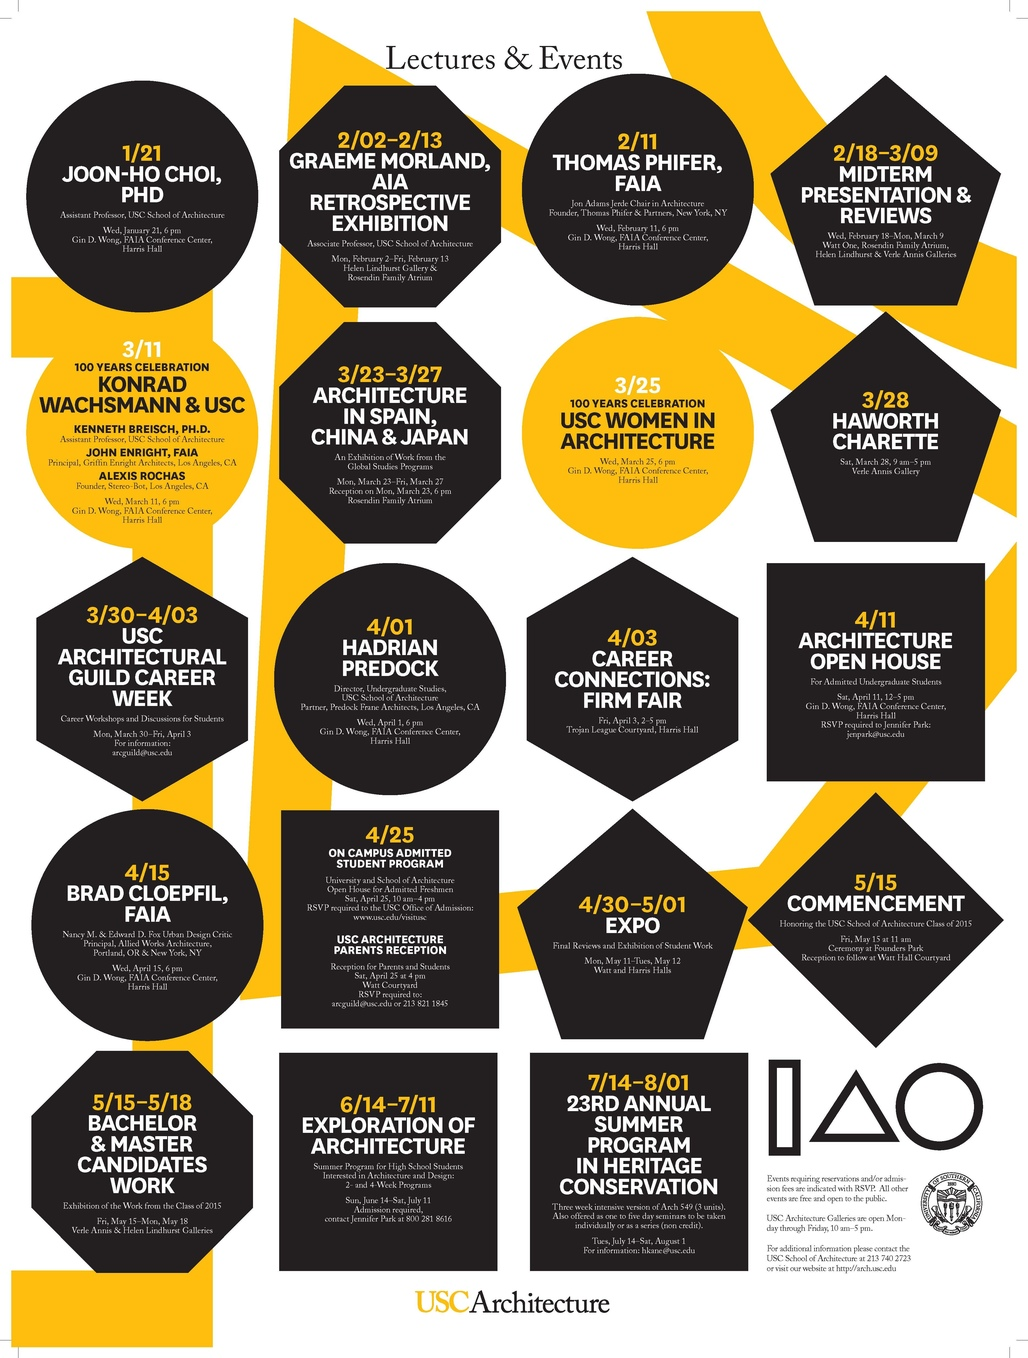 USC School of Architecture - LECTURES & EVENTS Spring 15. Image courtesy of USC School of Architecture.